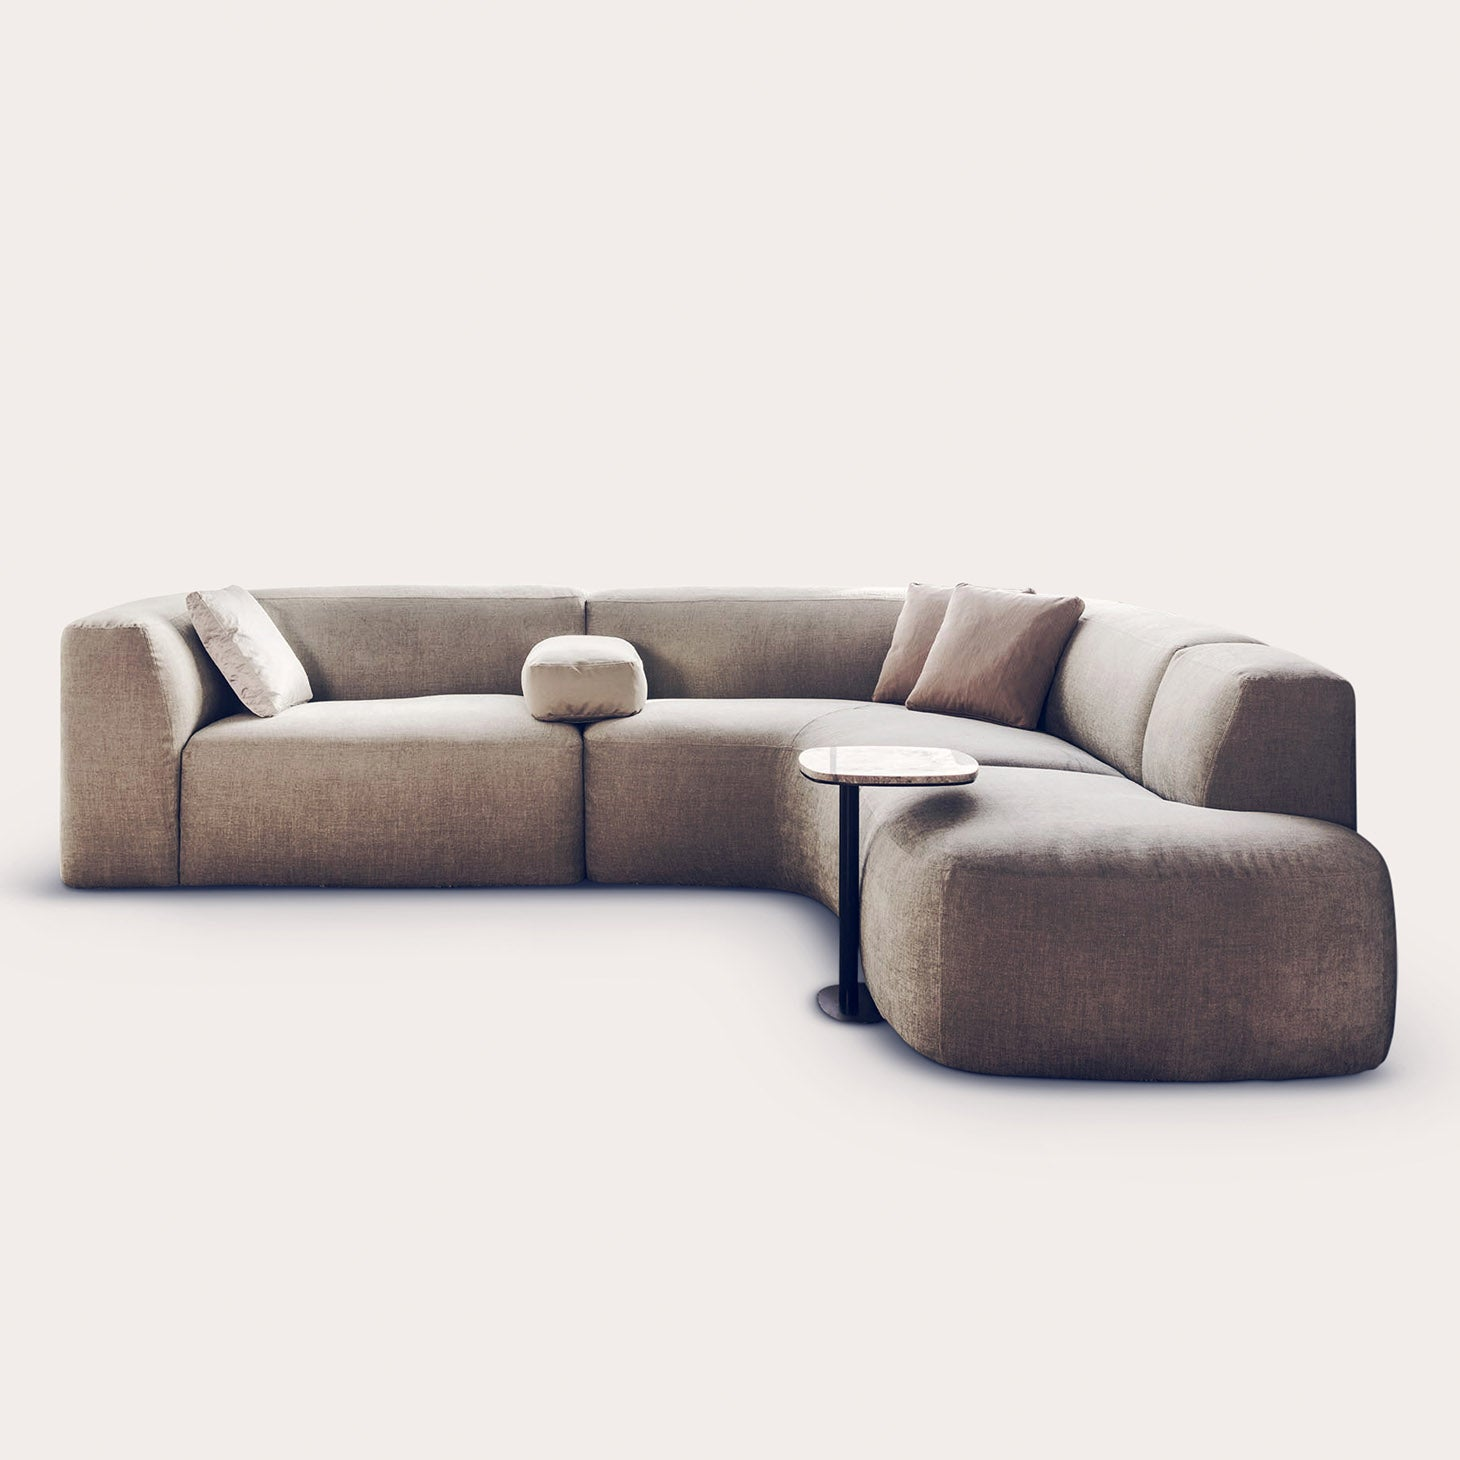 Bo Seating Piet Boon Designer Furniture Sku: 784-240-10028